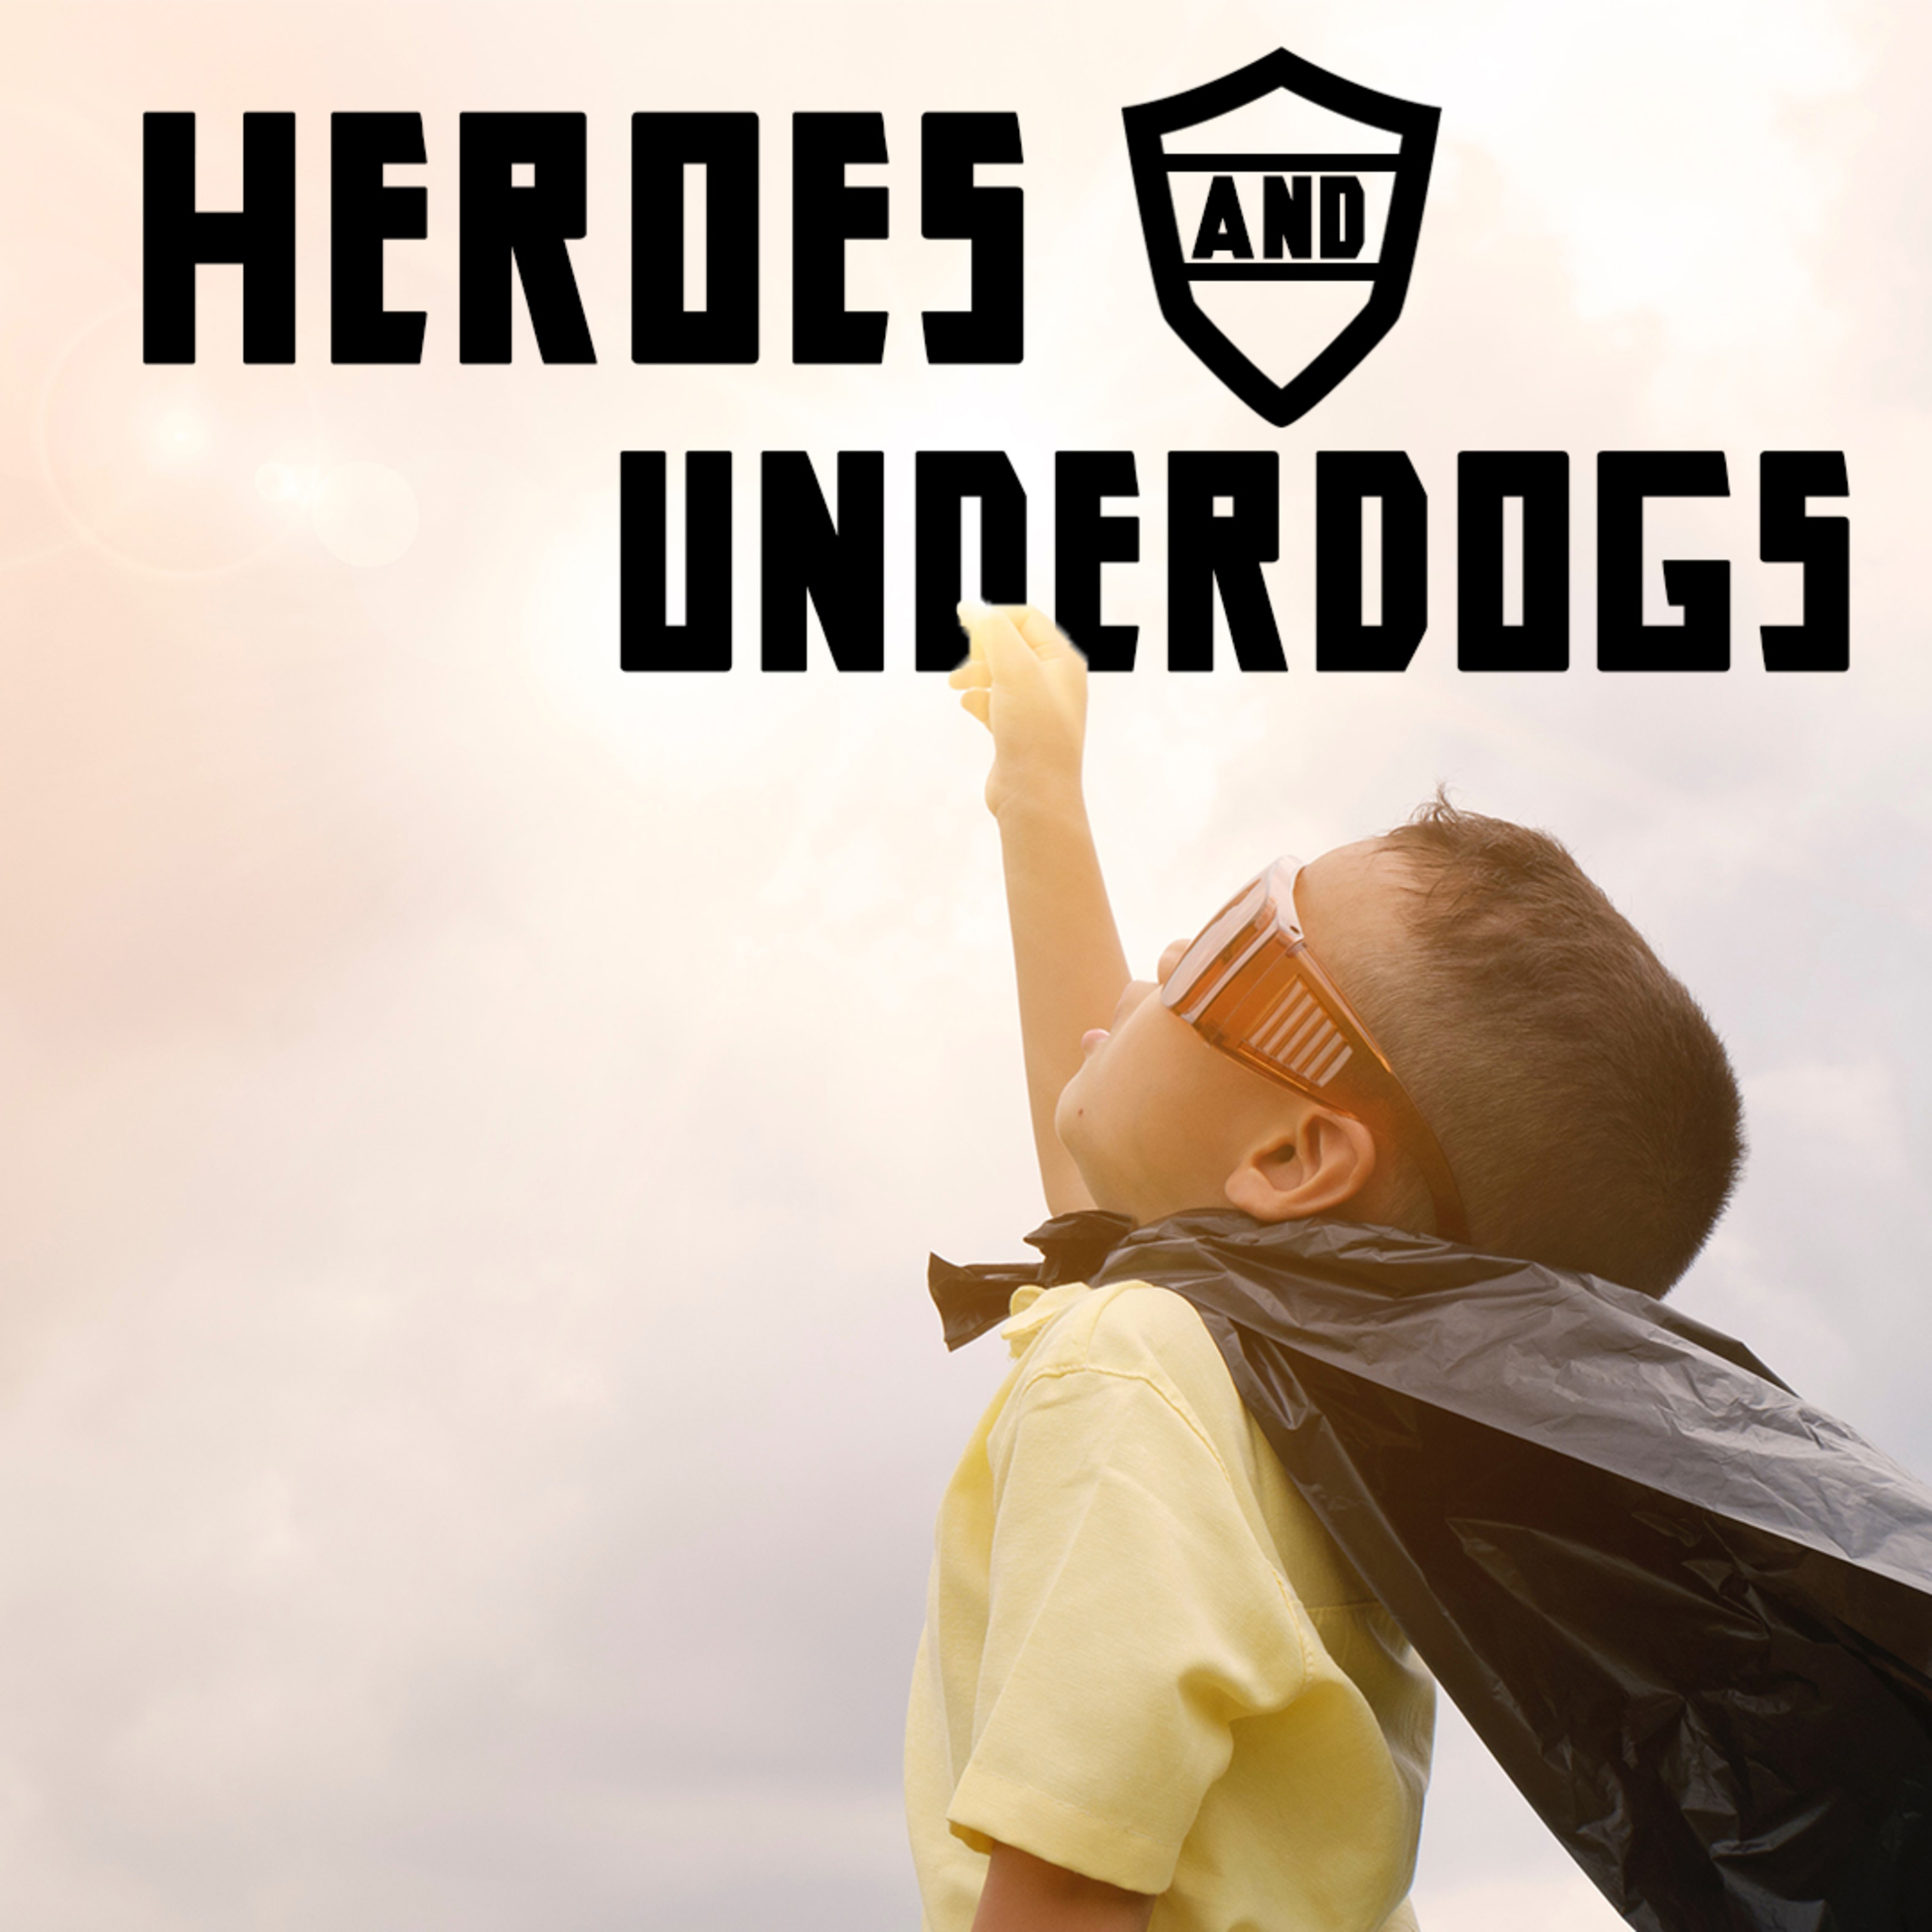 Heroes and Underdogs #28